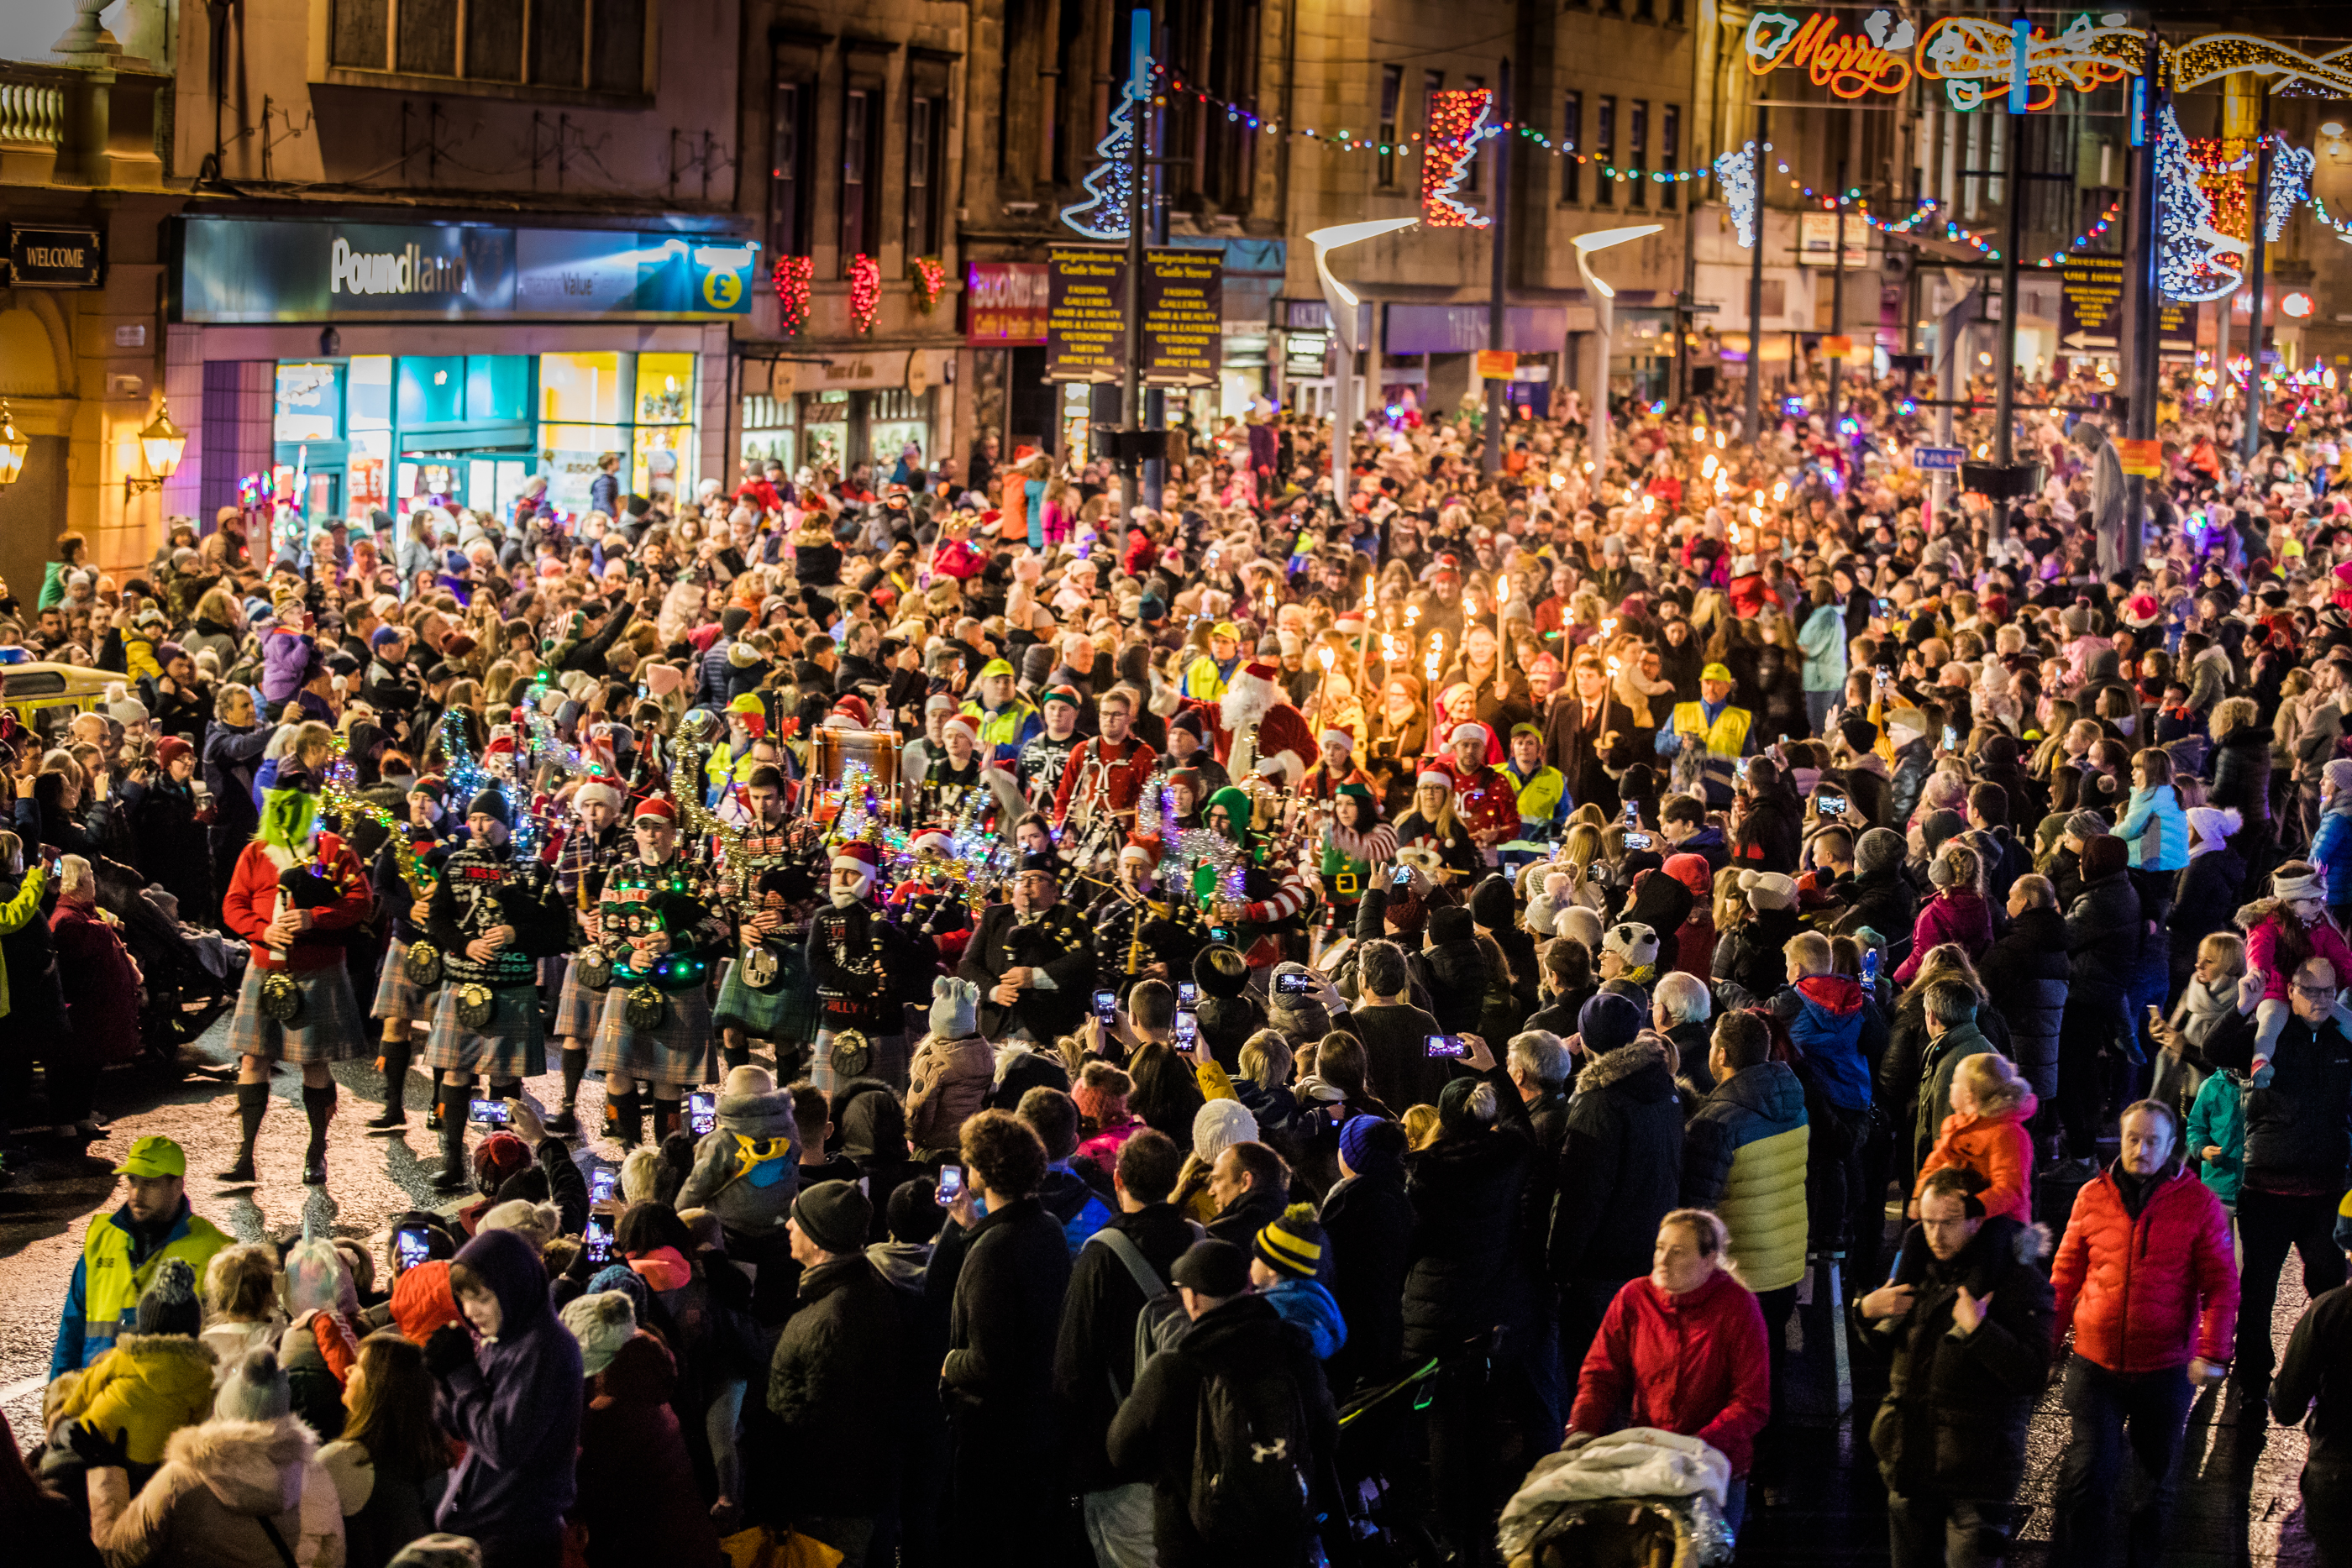 A large crowd gathered to see the Christmas lights being switched on in Inverness.